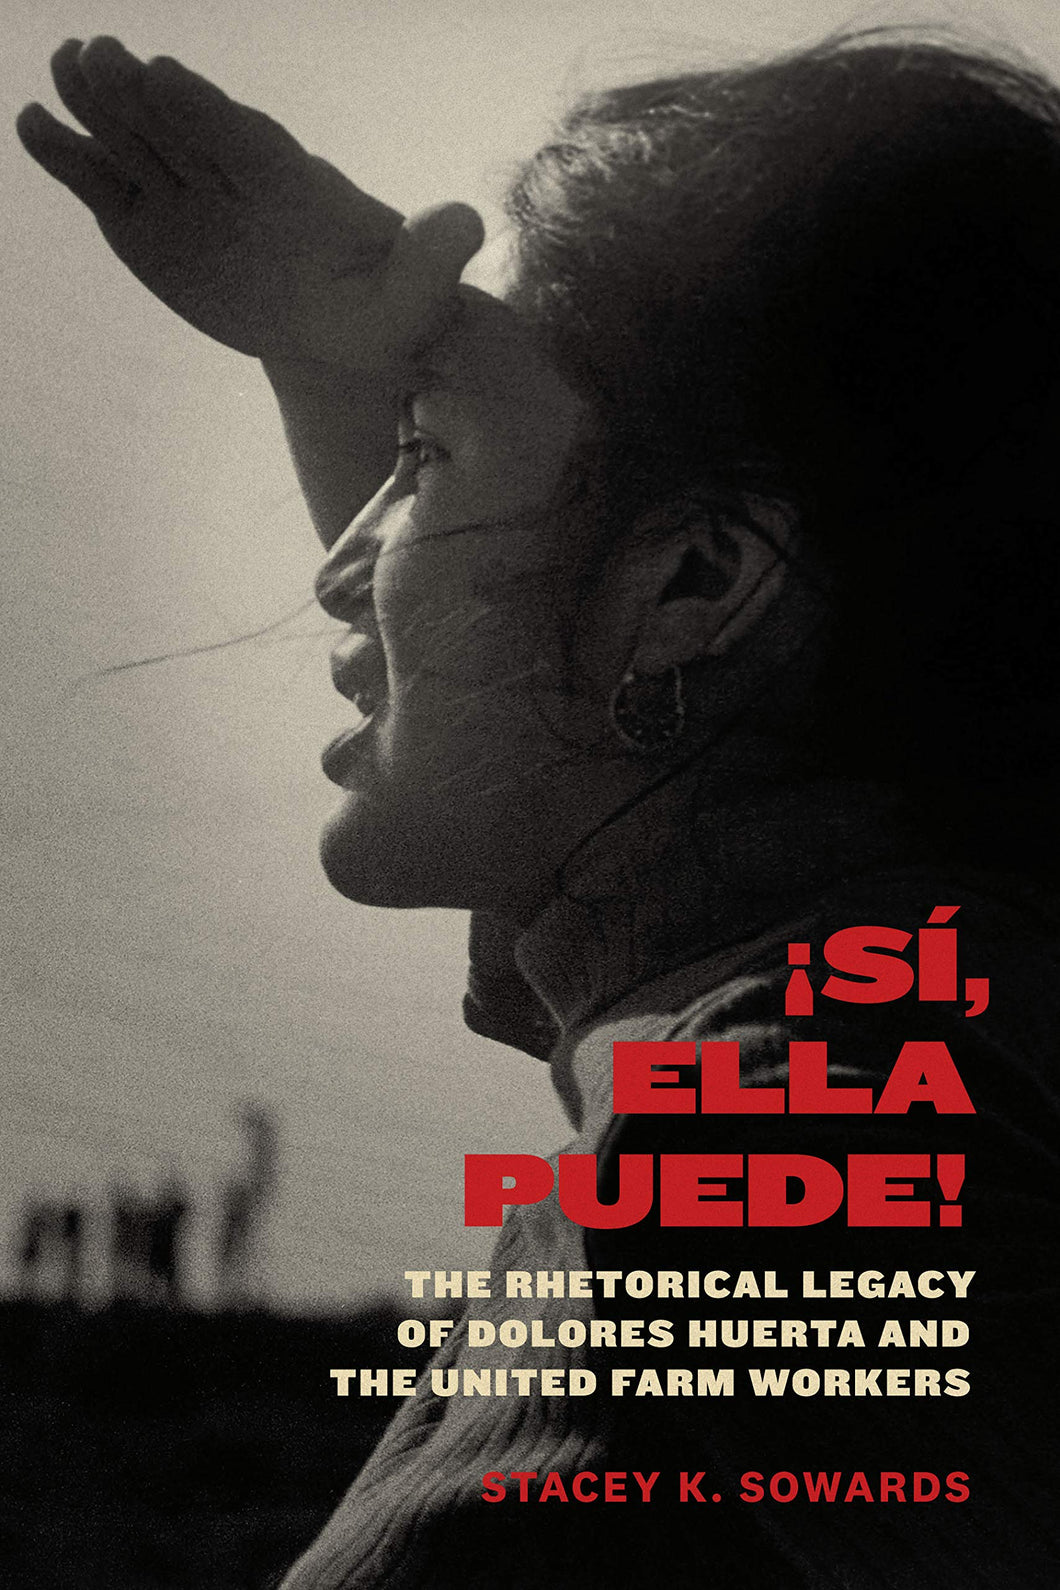 Sí, Ella Puede!: The Rhetorical Legacy of Dolores Huerta and the United Farm Workers by Stacey K. Sowards